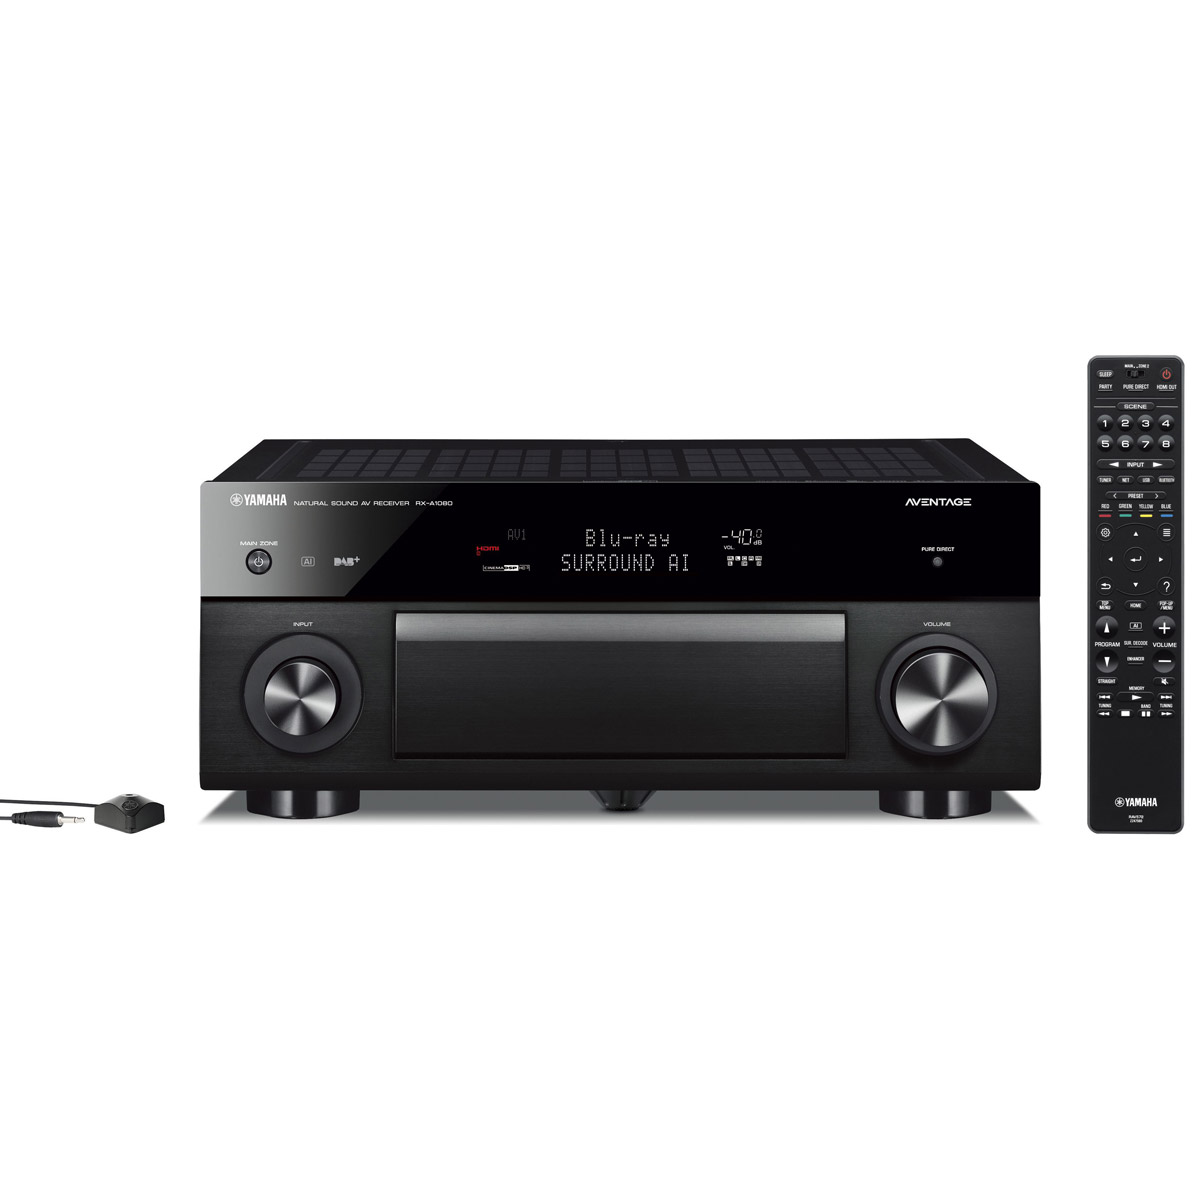 Ampli home cinéma Yamaha RX-A1080 Noir Ampli-tuner Home Cinéma 7.2 3D 110W/canal - Dolby Atmos/DTS:X - 7x HDMI HDCP 2.2 Ultra HD 4K - Wi-Fi/Bluetooth/DLNA/AirPlay - MusicCast/MusicCast Surround - A.R.T. Wedge - Calibration YPAO RSC